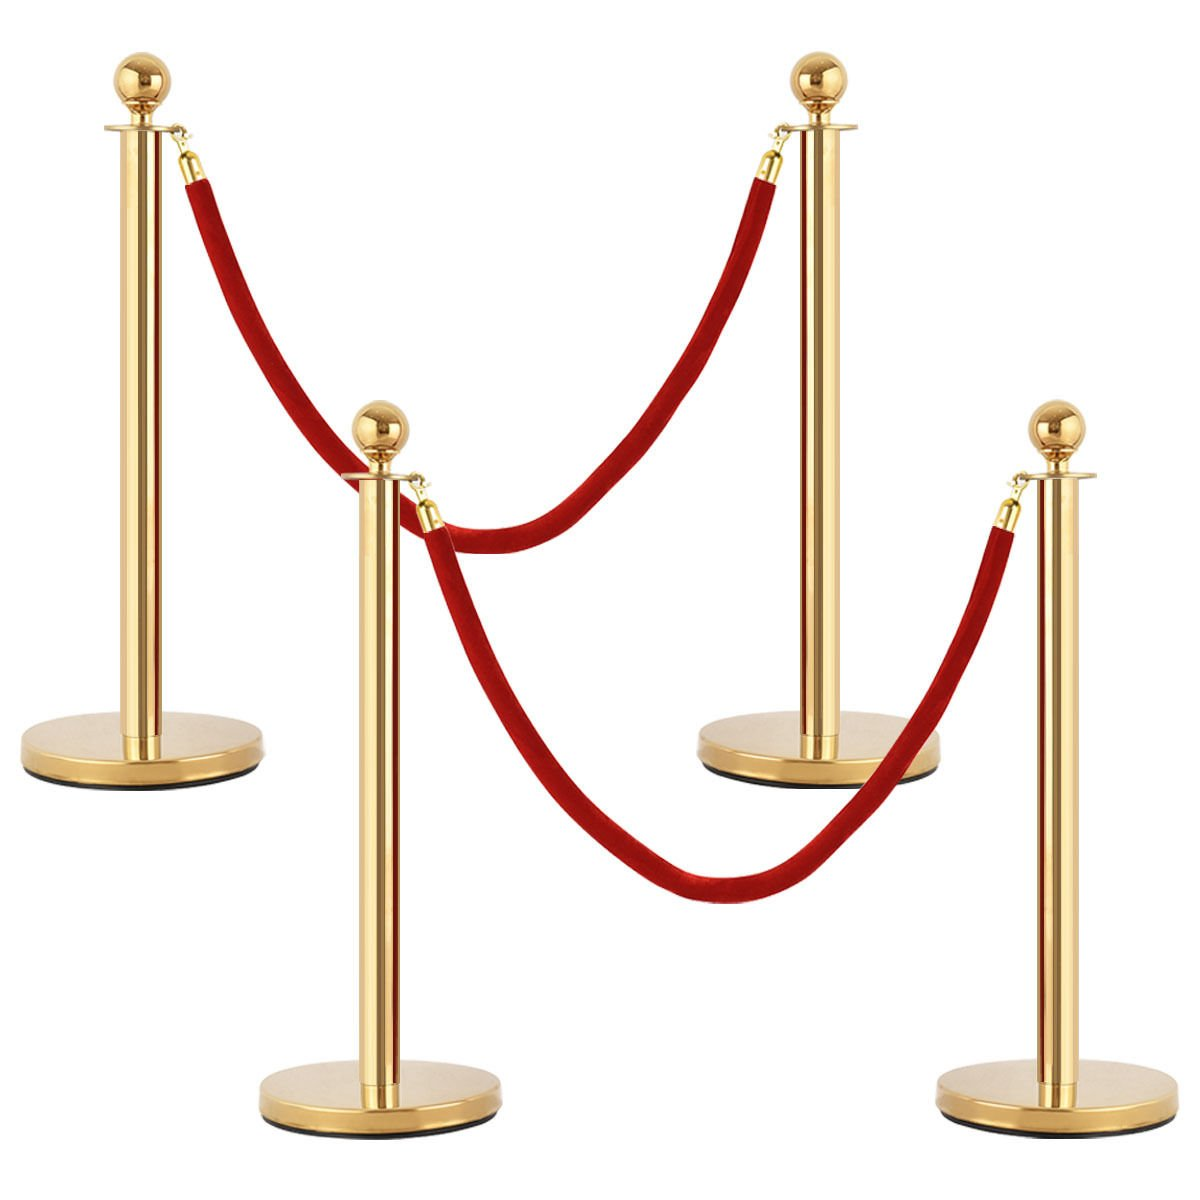 KCHEX>>>4Pcs Stanchion Posts Queue Pole Retractable 2 Velvet Ropes Crowd Control Barrier>This is our top stainless steel stanchion posts is anti-rust and flawless and the poles nice and shiny.